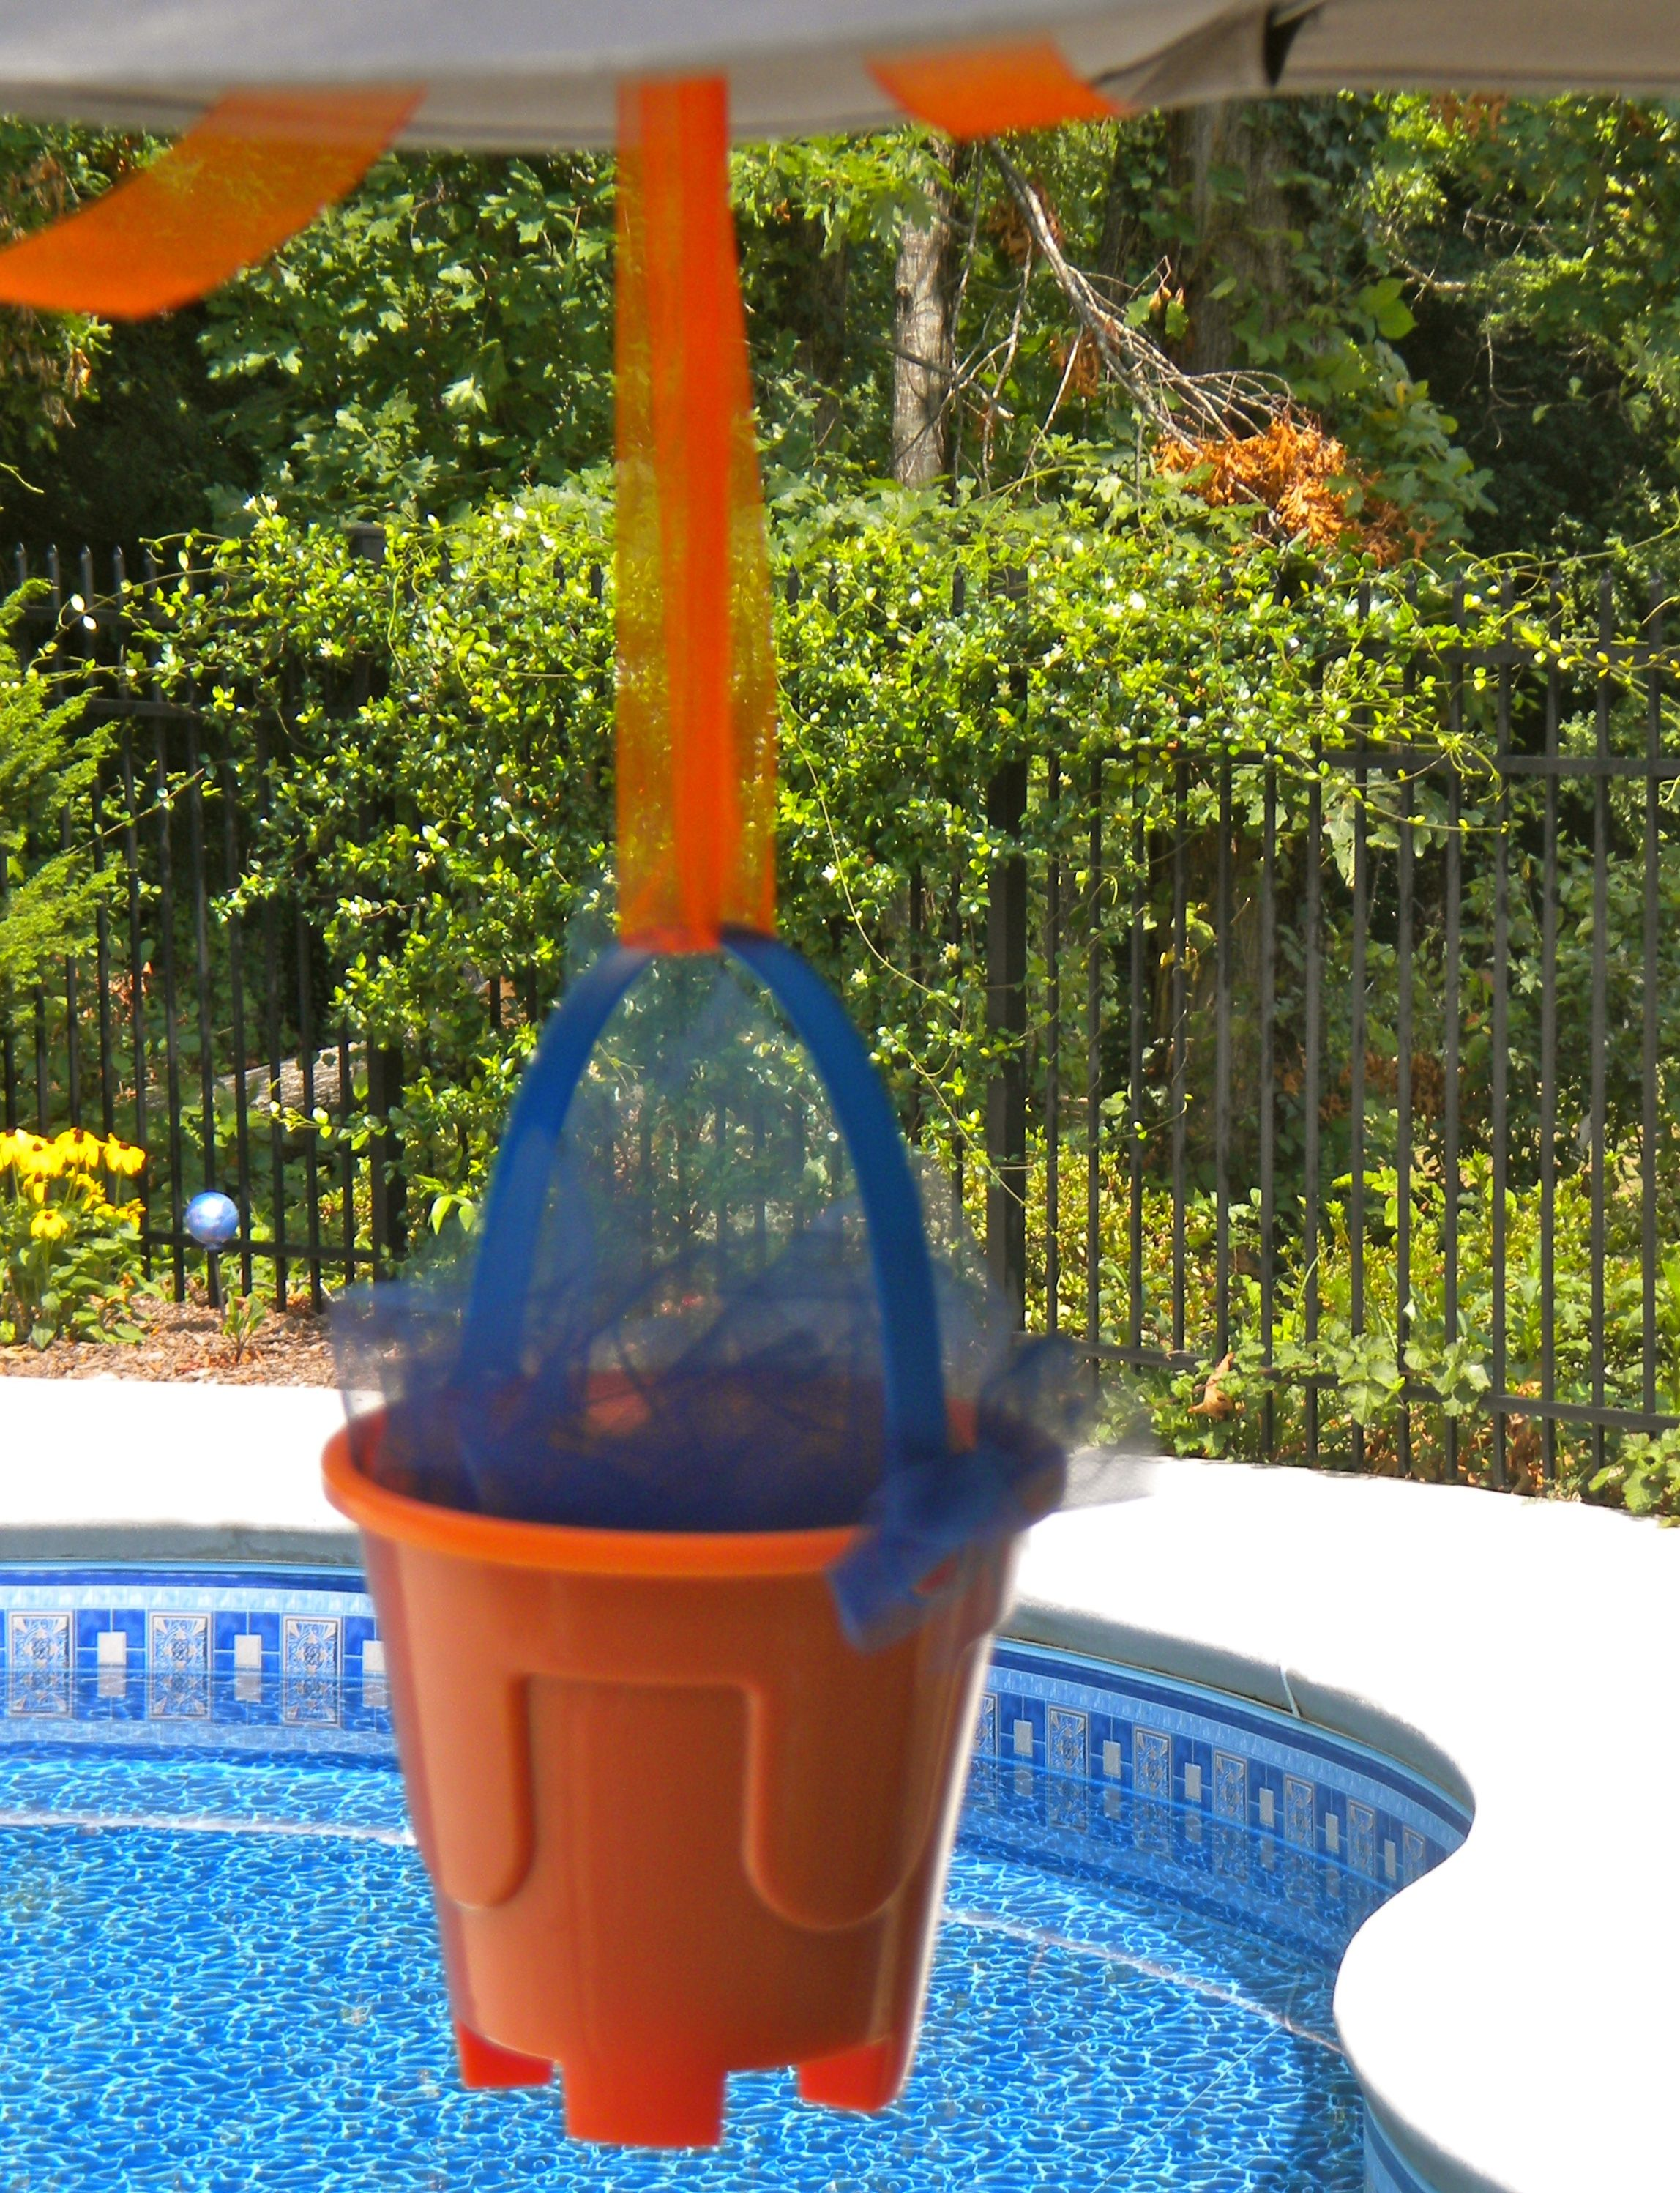 Hang Beach Pails Filled With A Little Blue Netting From The Patio Umbrella  Ribs For Beach